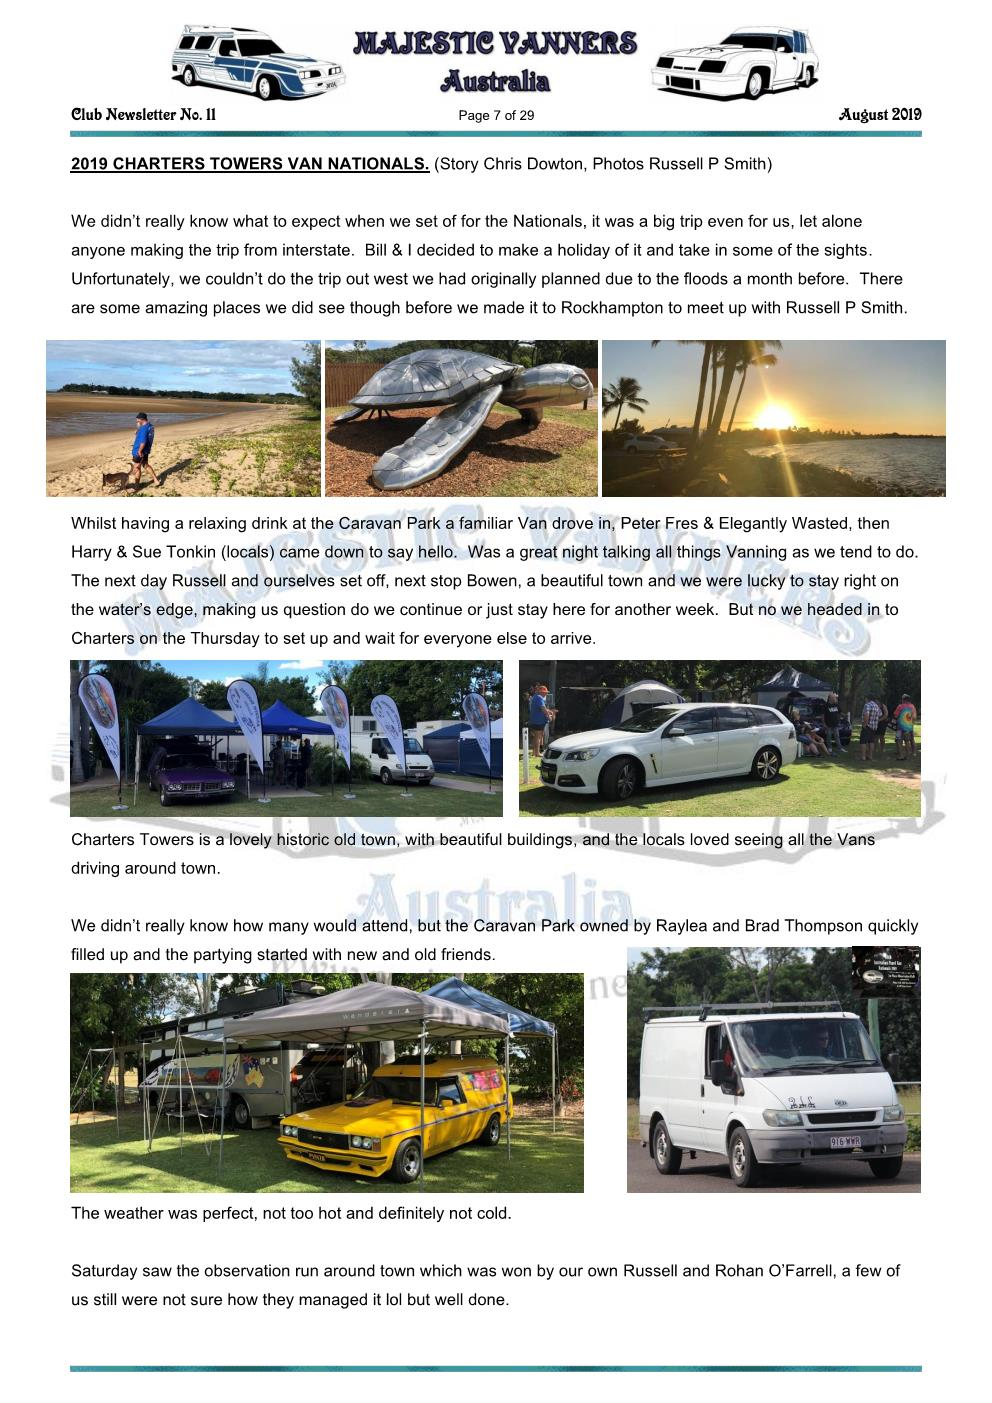 MAJESTIC VANNERS Newsletter Issue No: 11 August 2019 Mv_new45